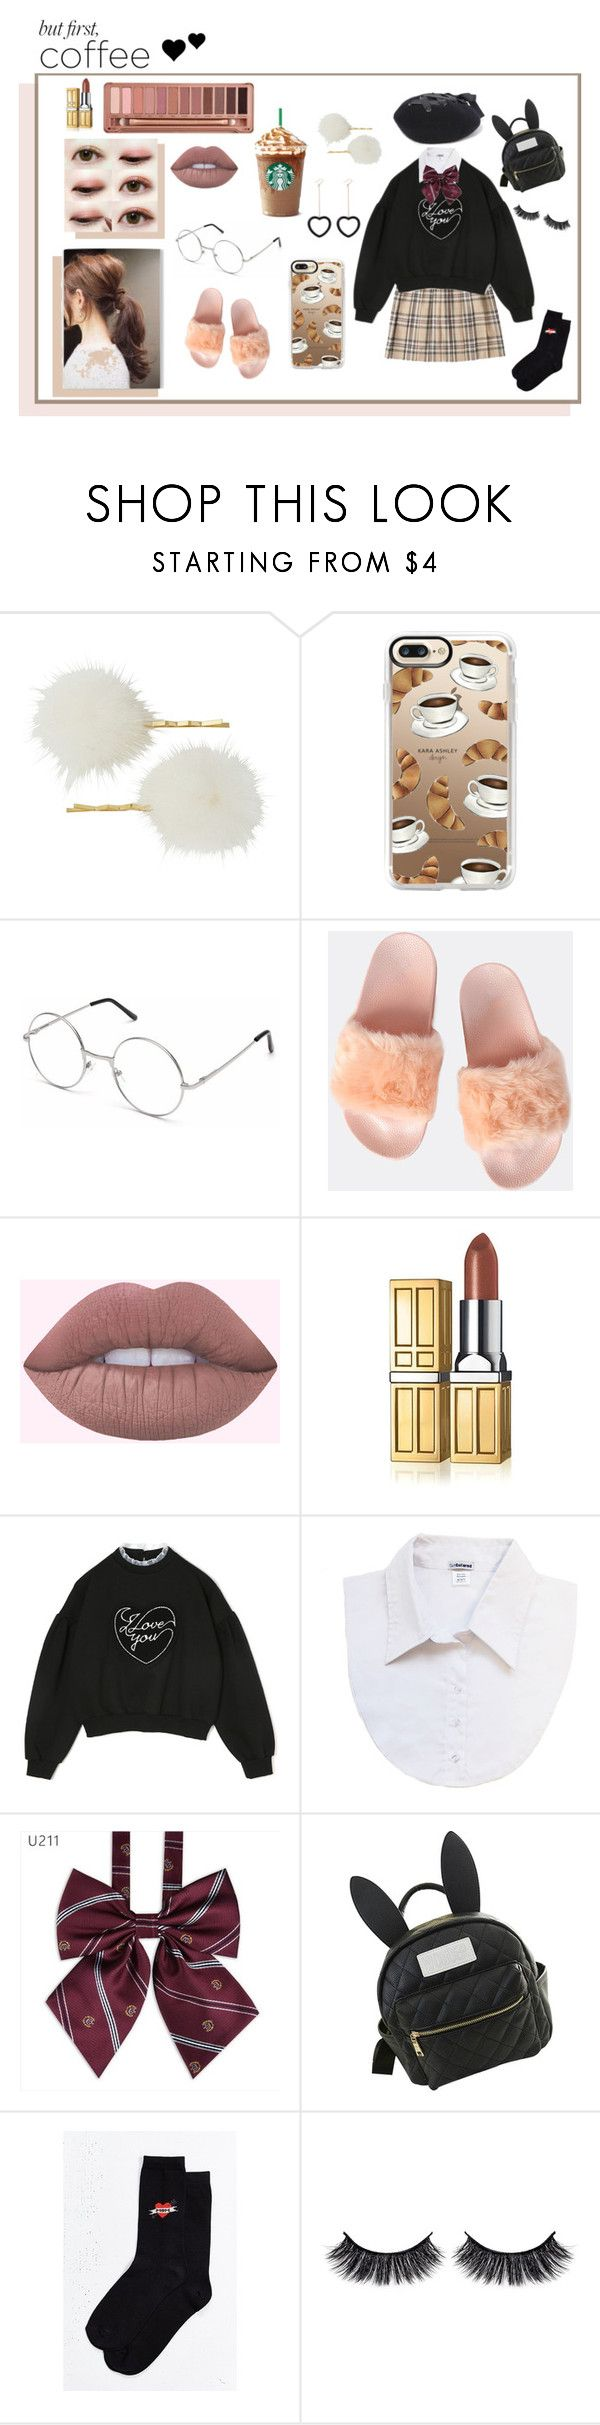 """Milky Bun"" by fawntears ❤ liked on Polyvore featuring Casetify, Elizabeth Arden, Dickies, cutekawaii, Urban Outfitters, Battington and Urban Decay"